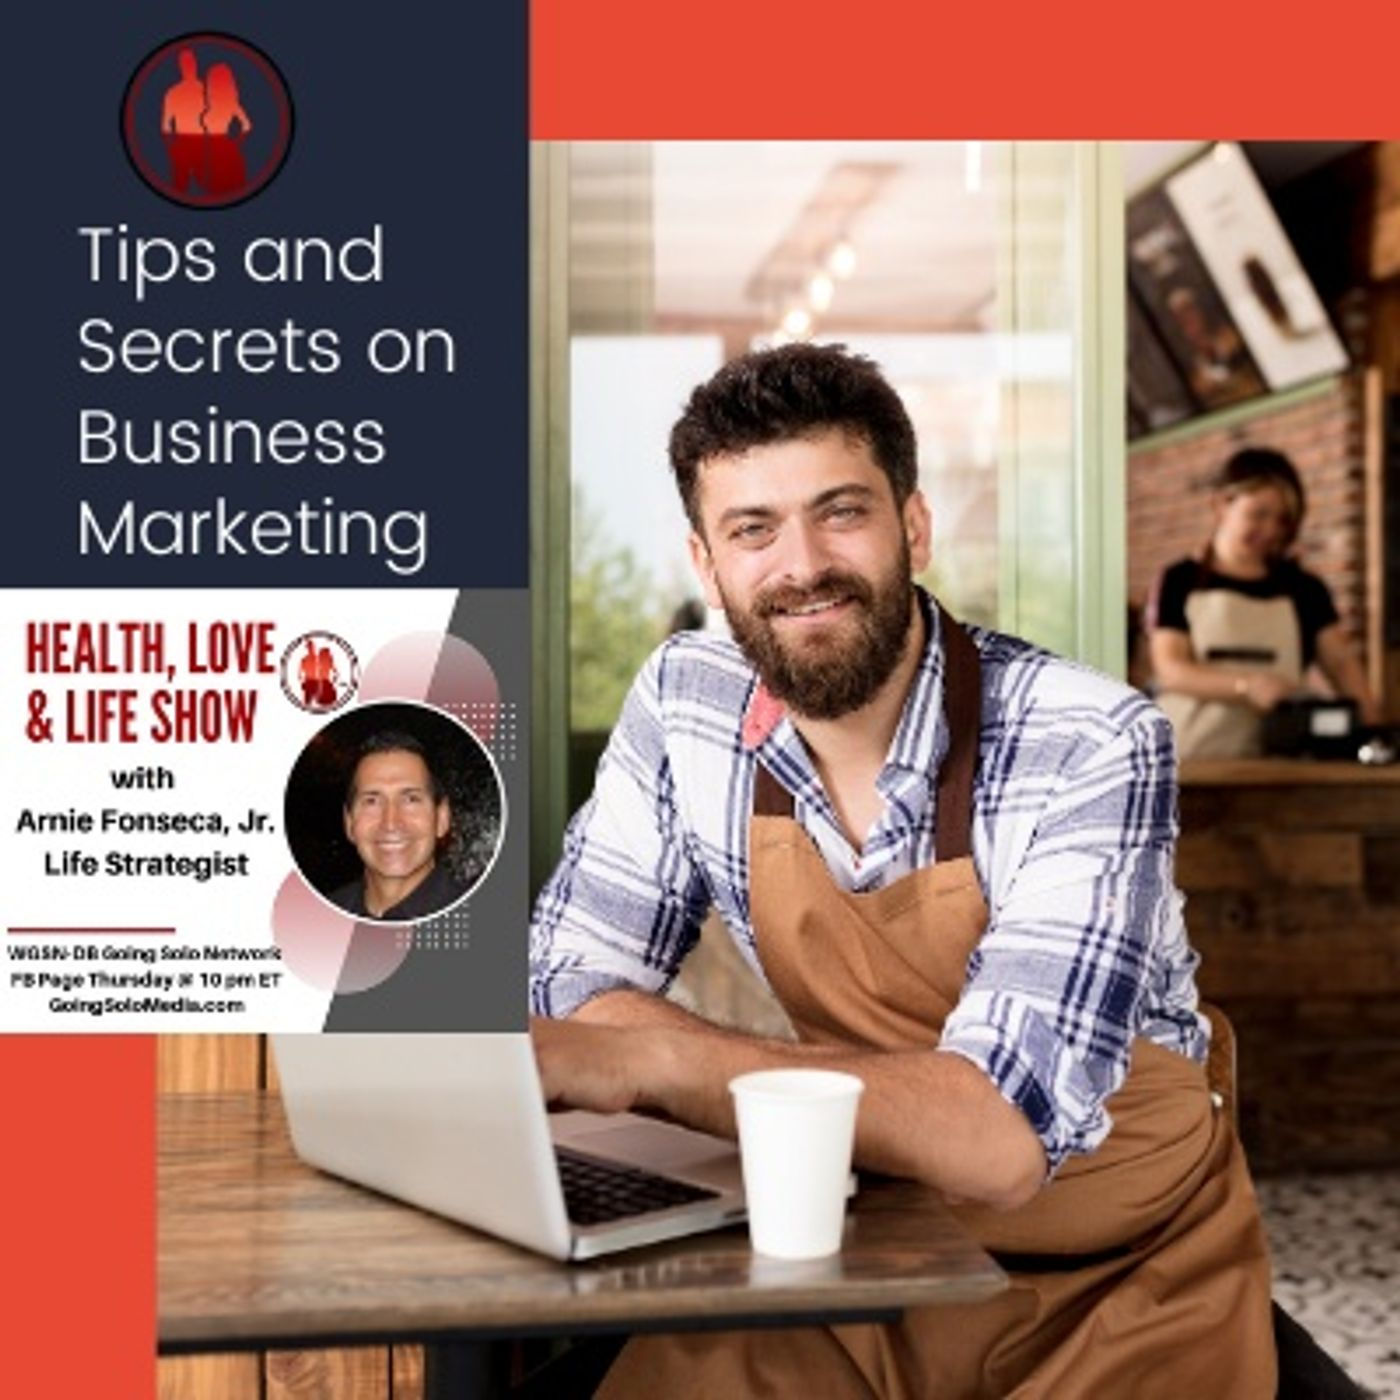 Tips and Secrets on Business Marketing